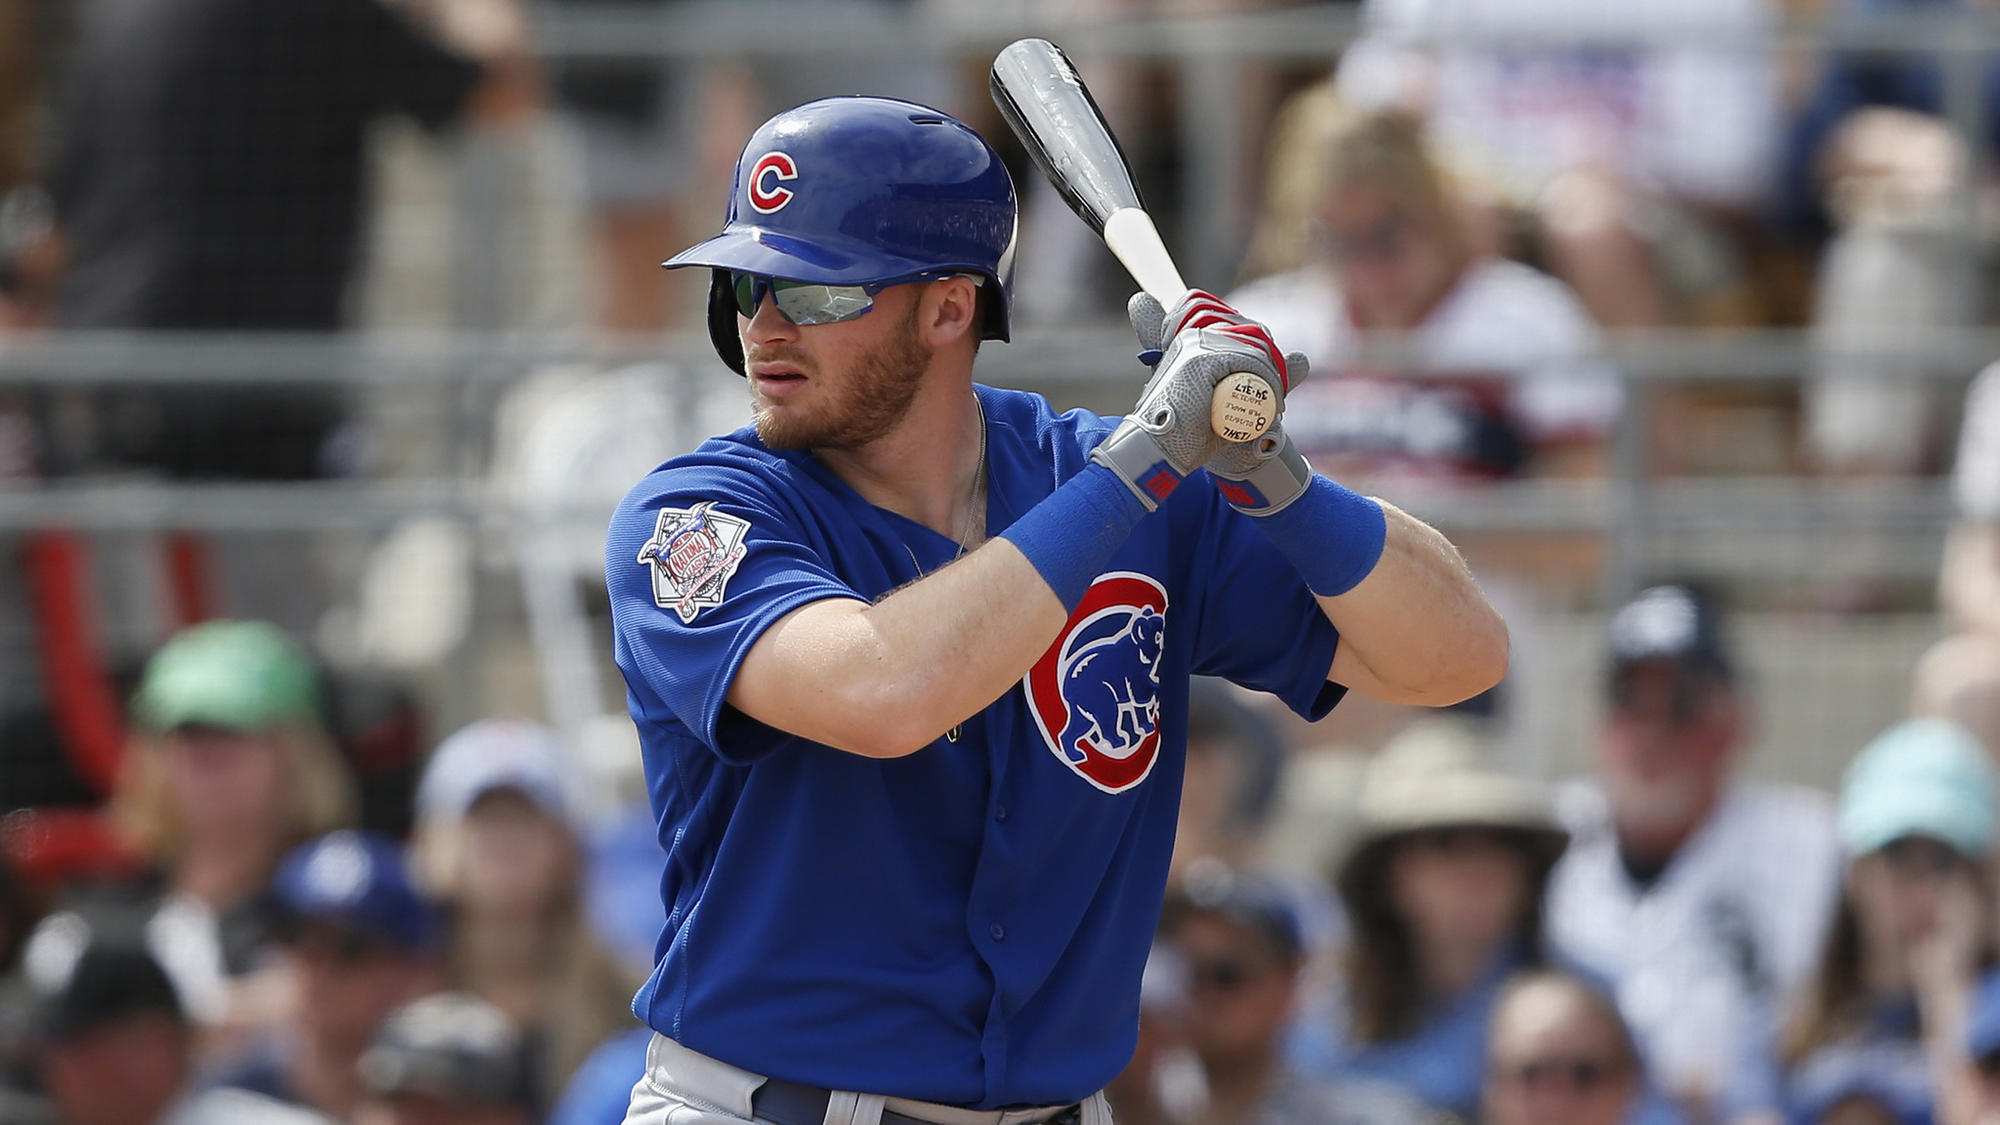 Cubs in the minors: Ian Happ is improving, Carl Edwards Jr. is stabilizing and Nico Hoerner is batting .300